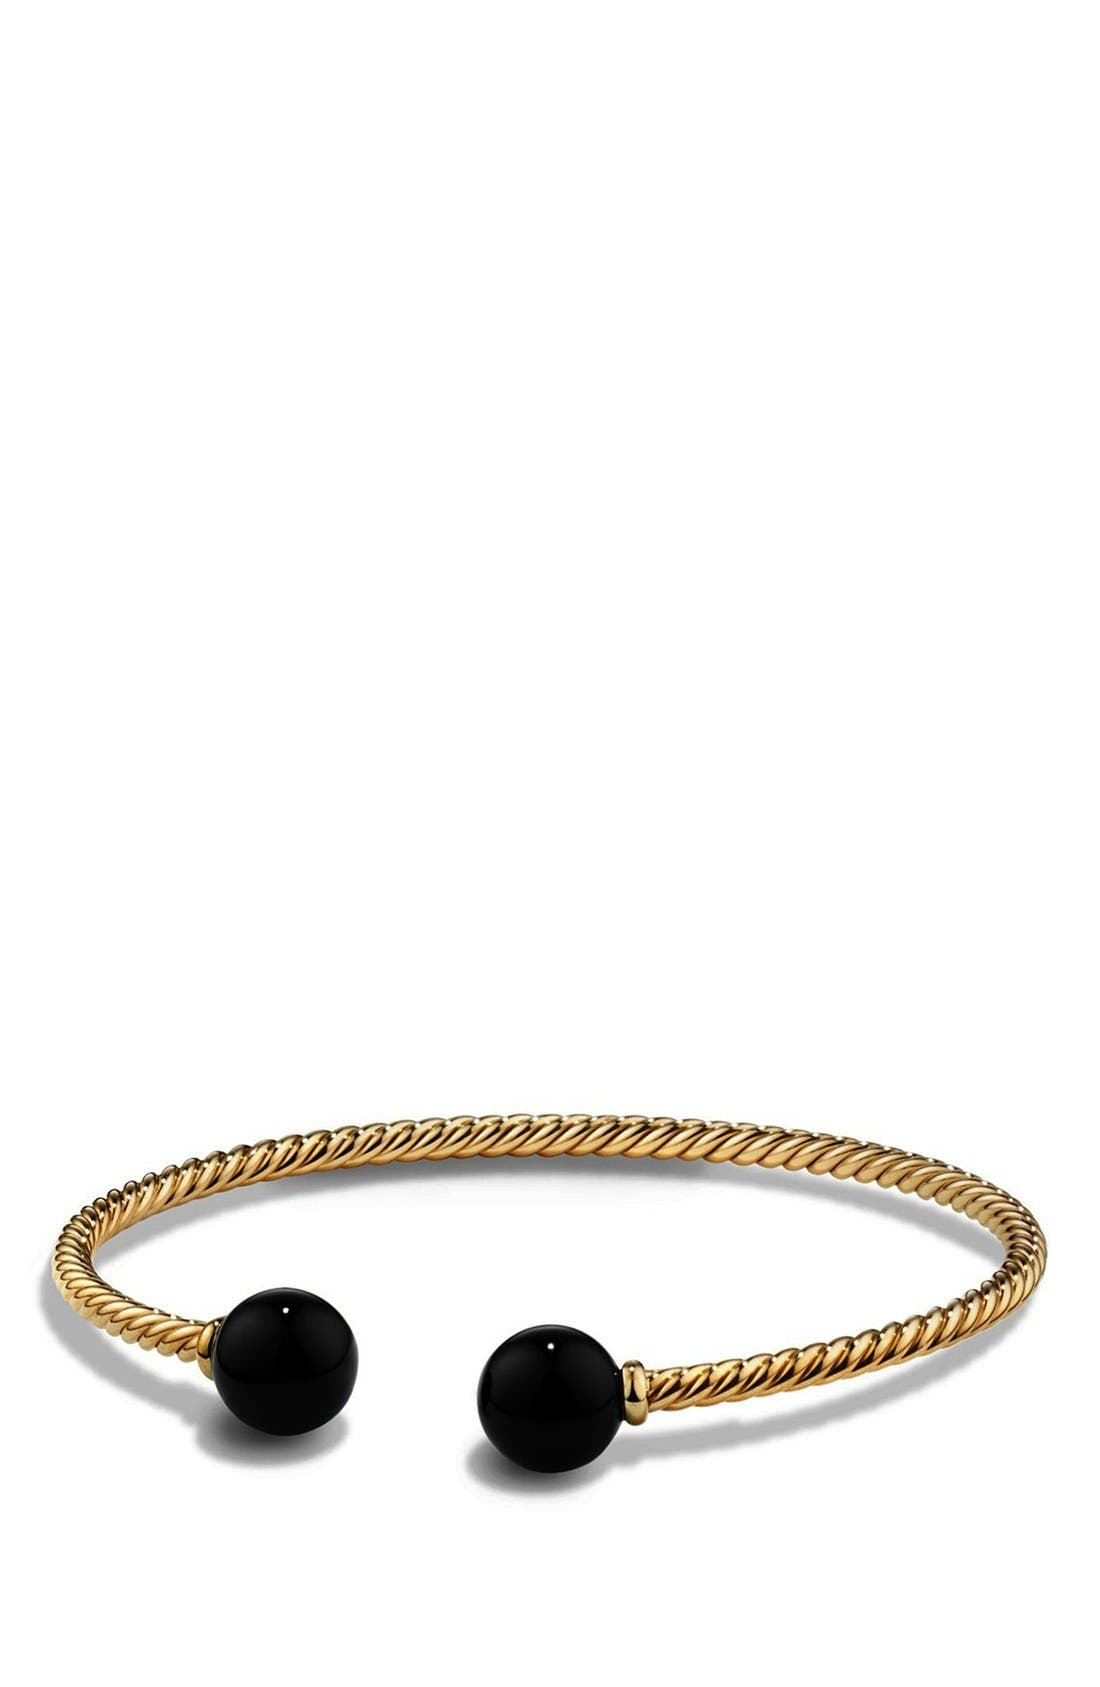 DAVID YURMAN 'Solari' Bead Bracelet, Main, color, BLACK ONYX